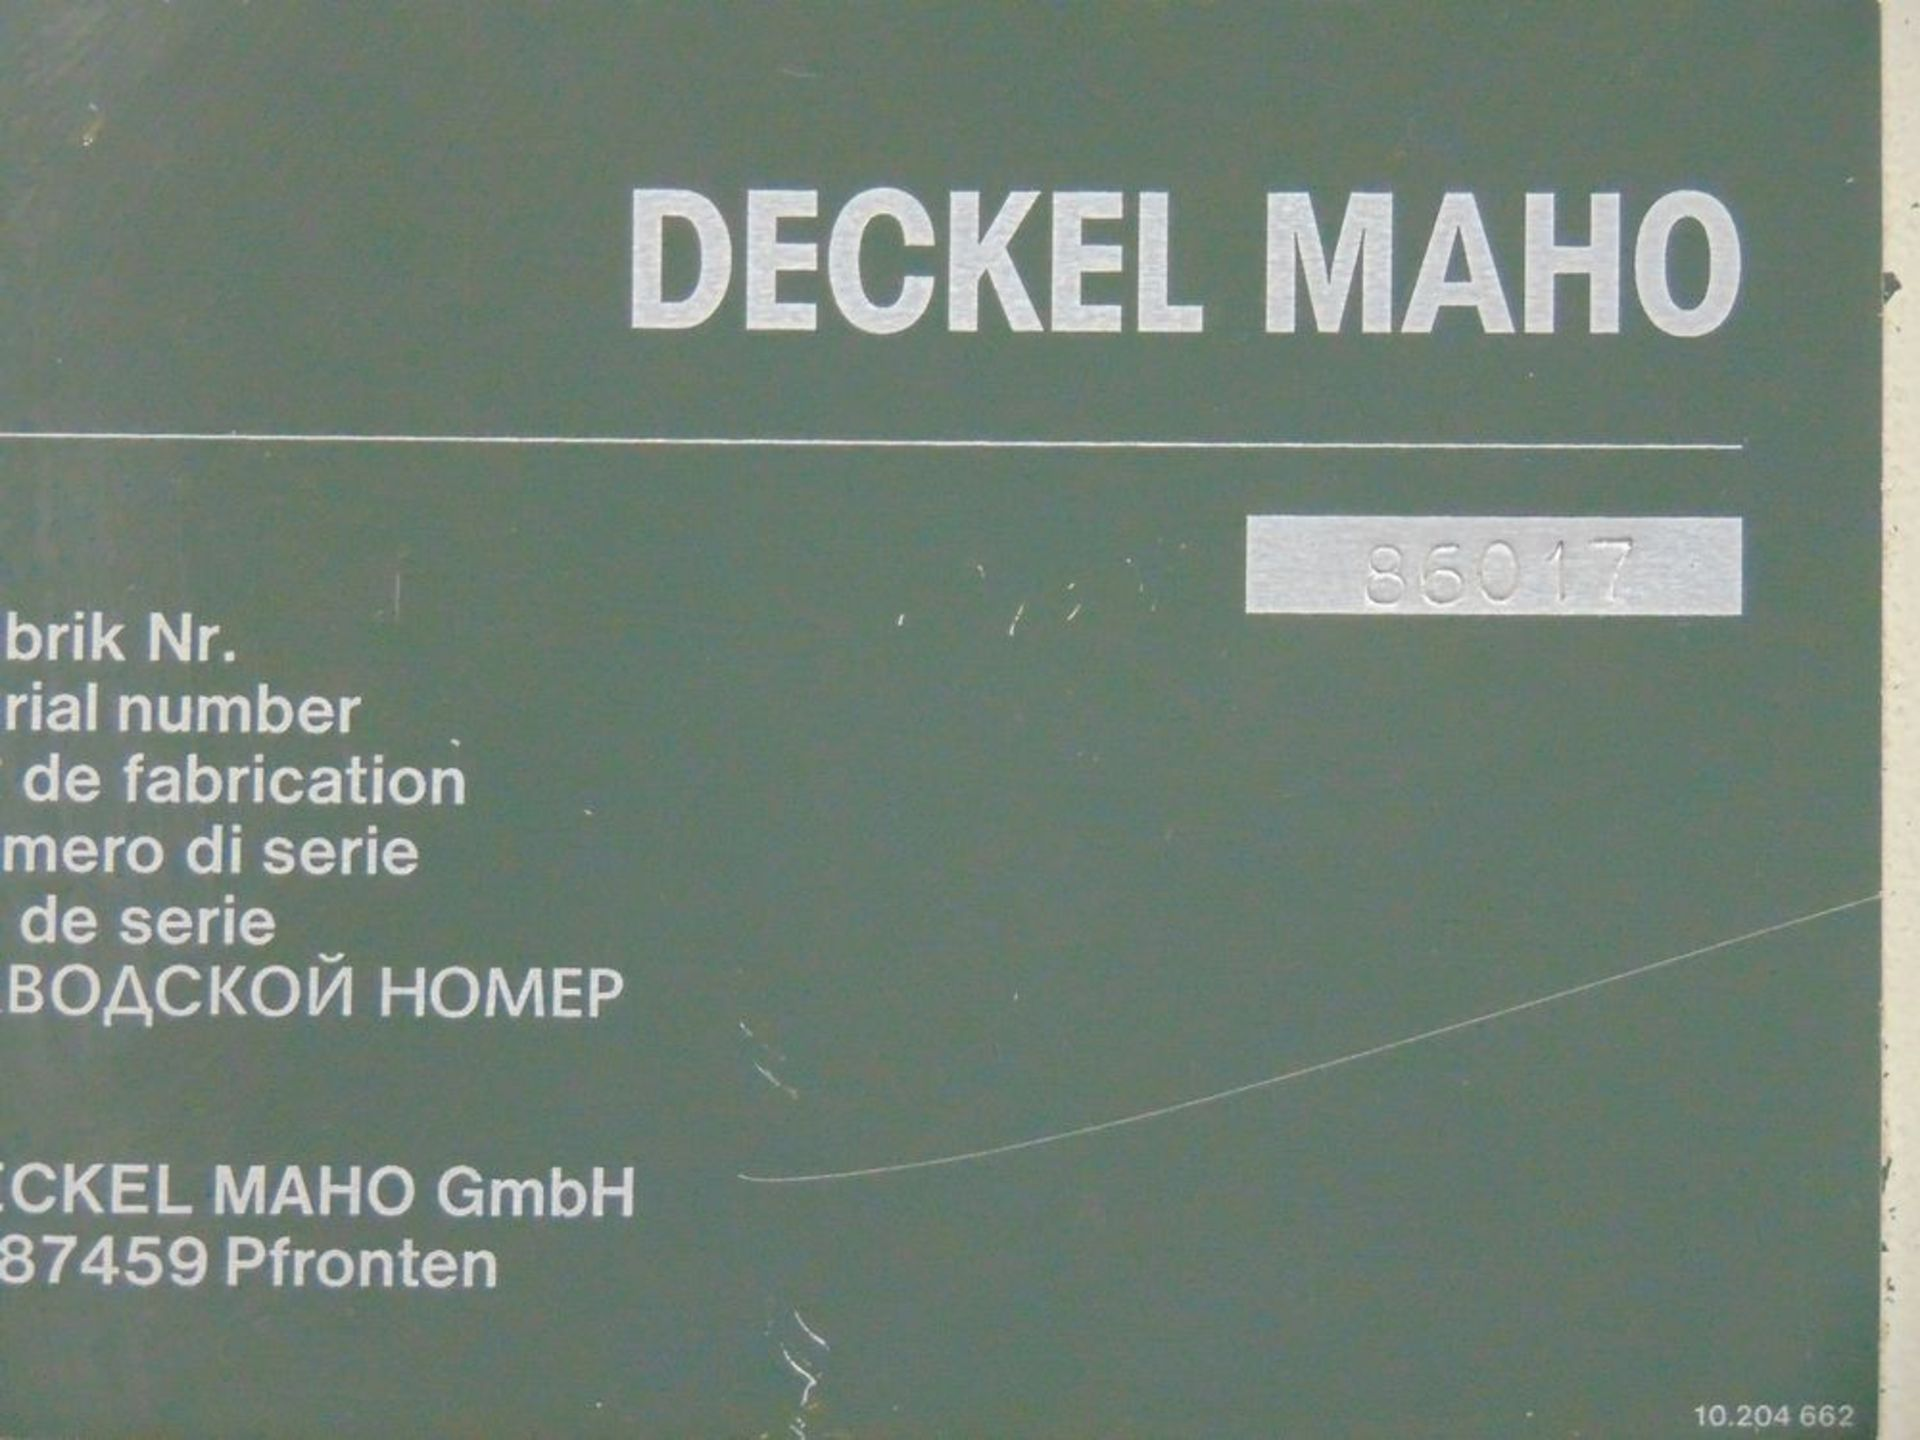 Lot 22 - (1998) Deckel Maho mod. DMU80P, 5-Axis CNC Horizontal Machine Center, Knuckle Joint Head,